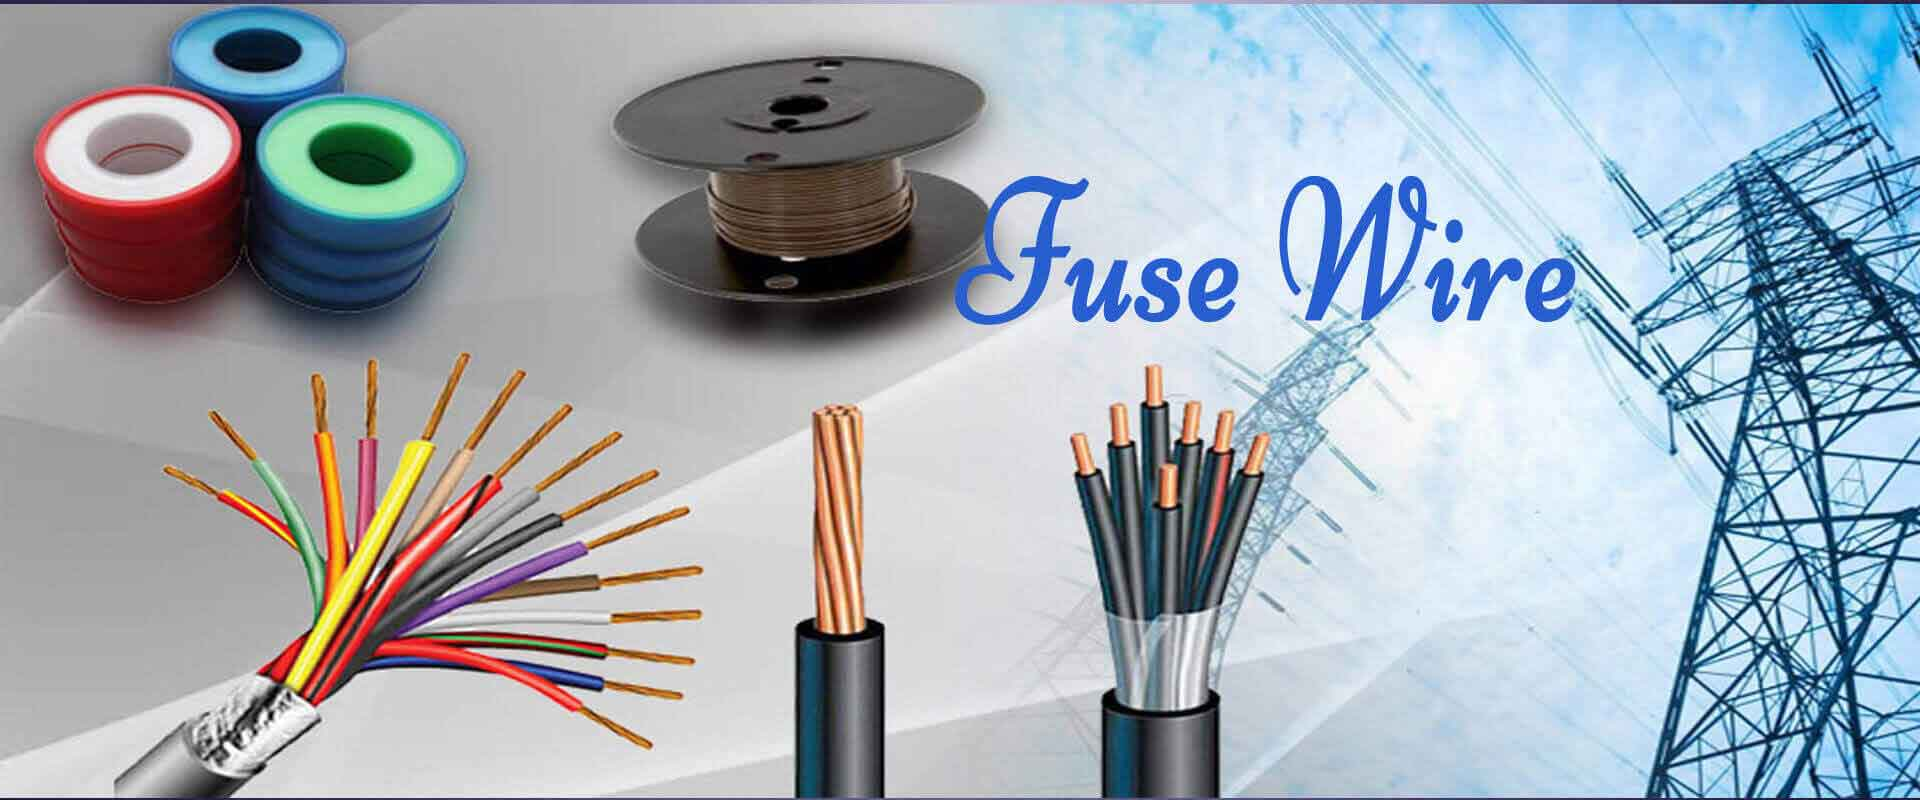 Silver Plated Copper Wire For Fuse In Washington UK